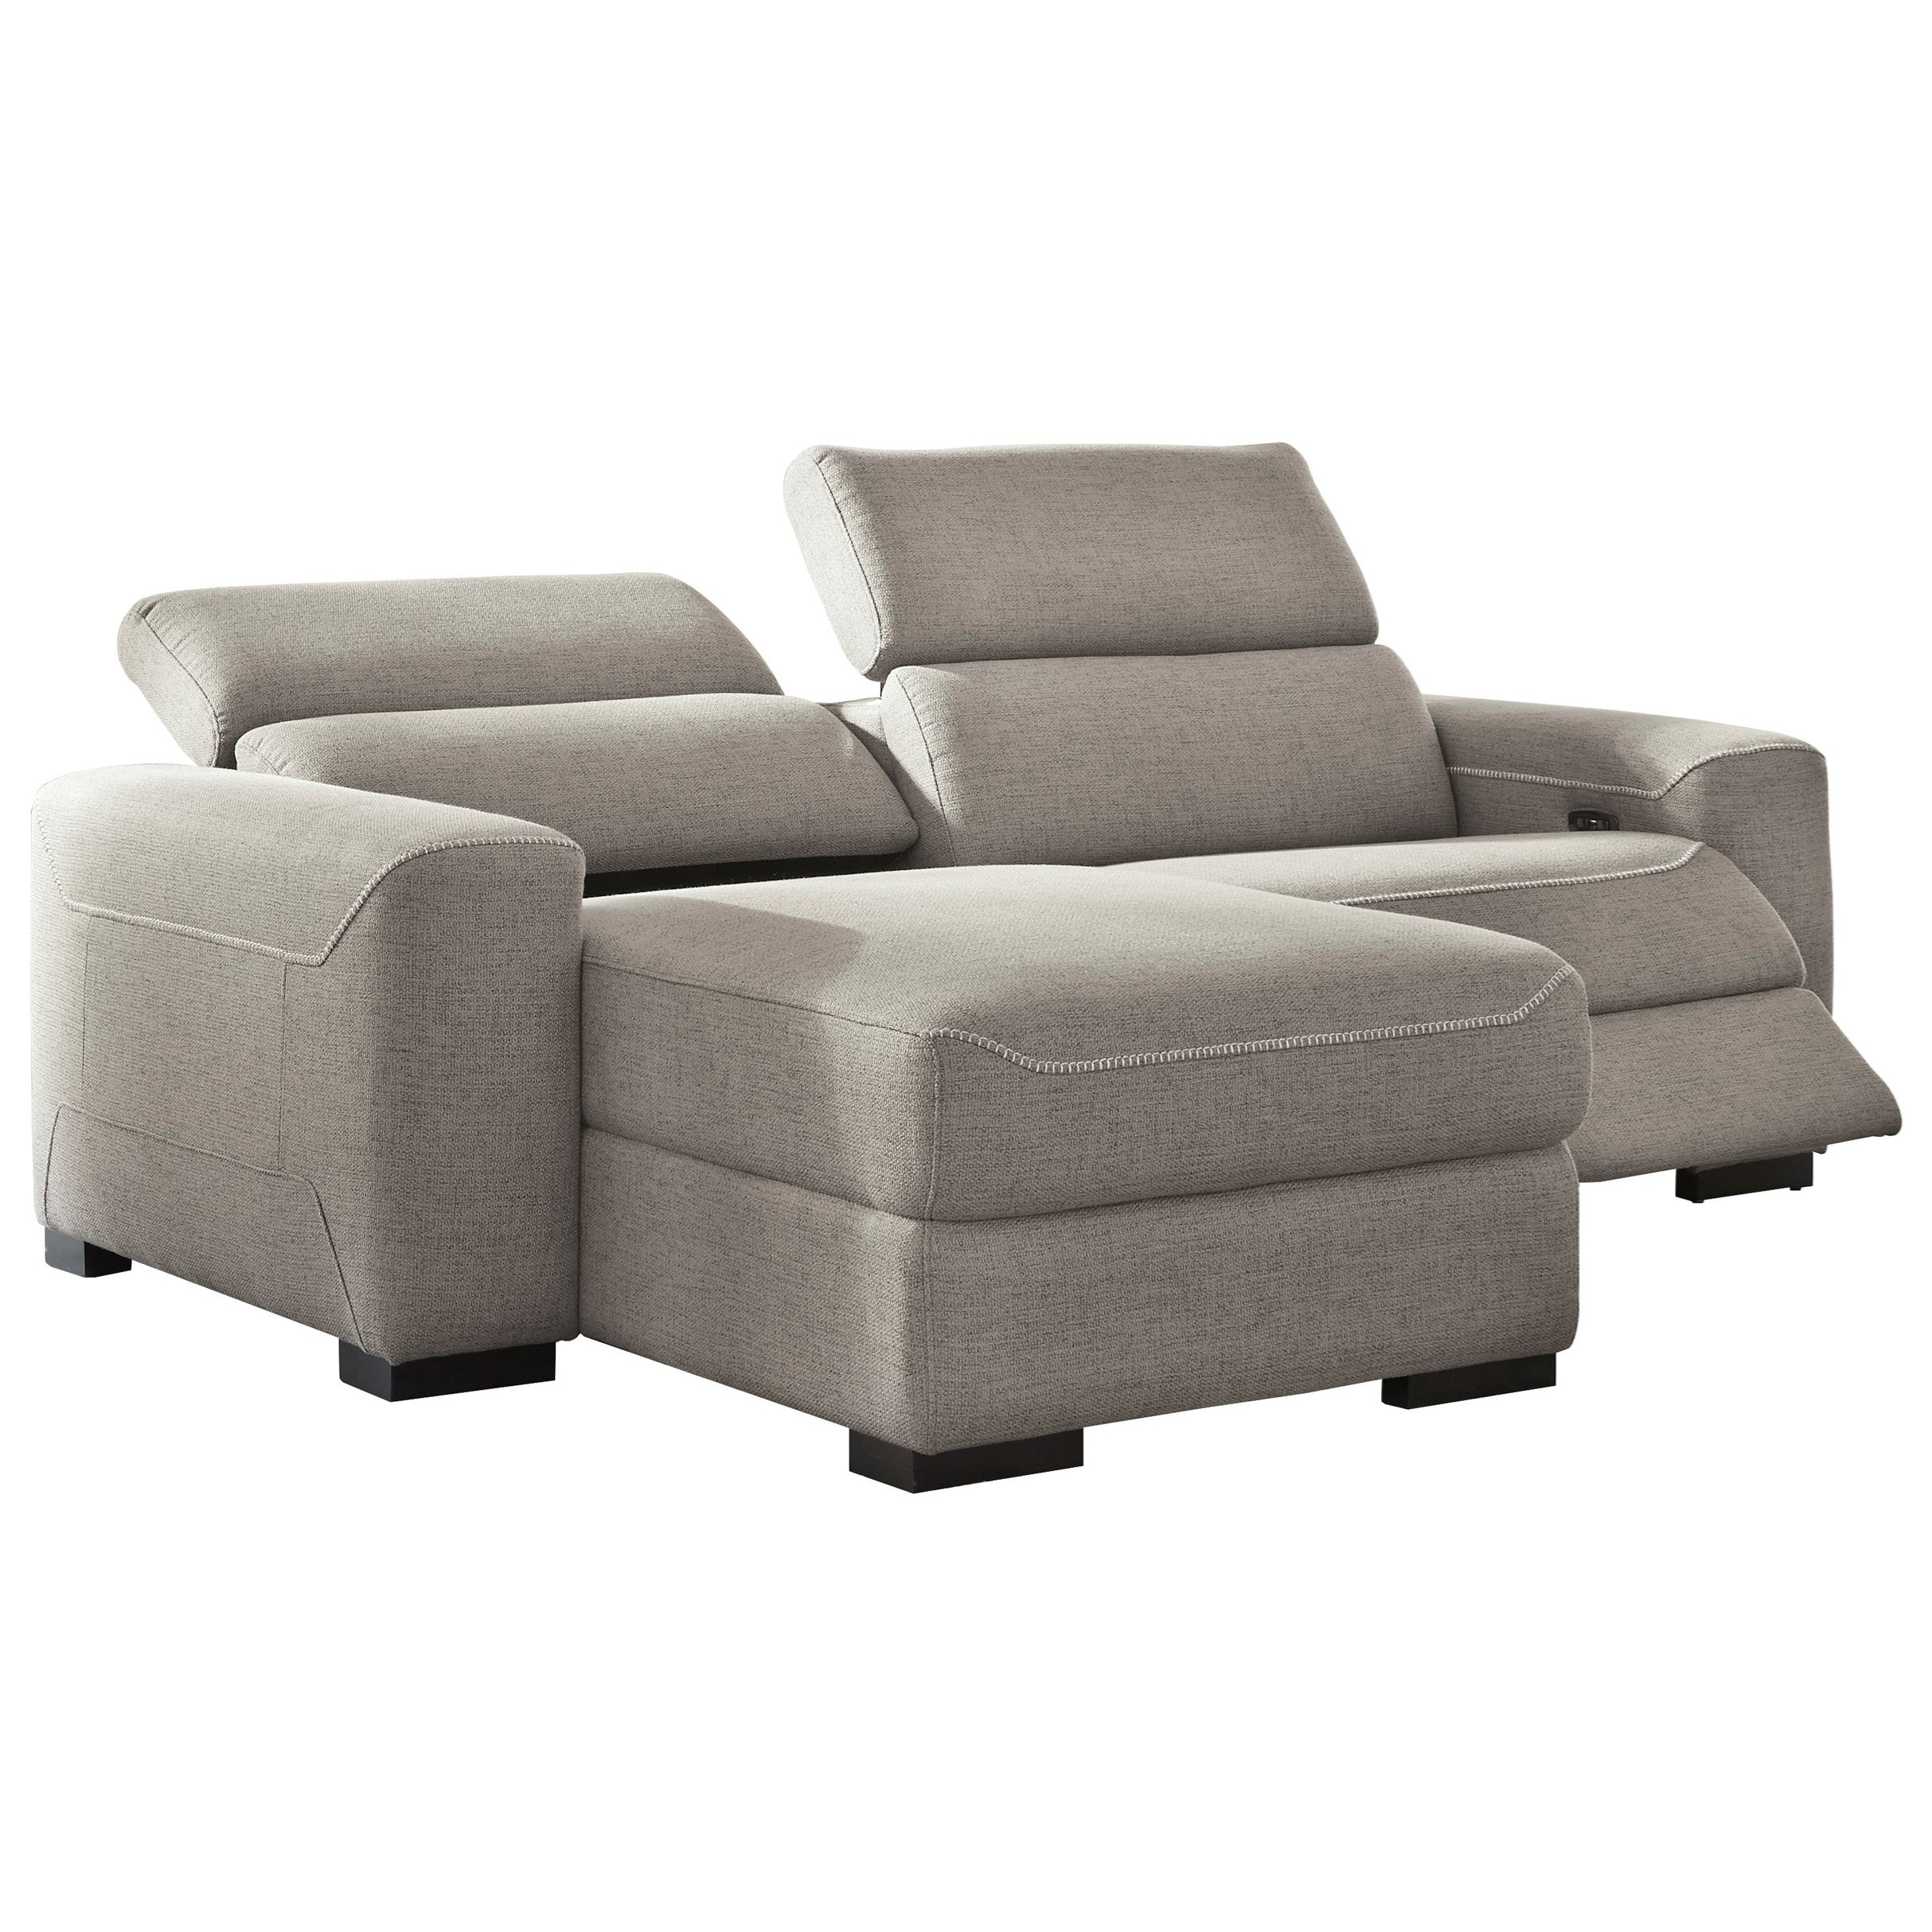 Mabton 2-Piece Power Reclining Sectional w/ Chaise by Signature Design by Ashley at Northeast Factory Direct